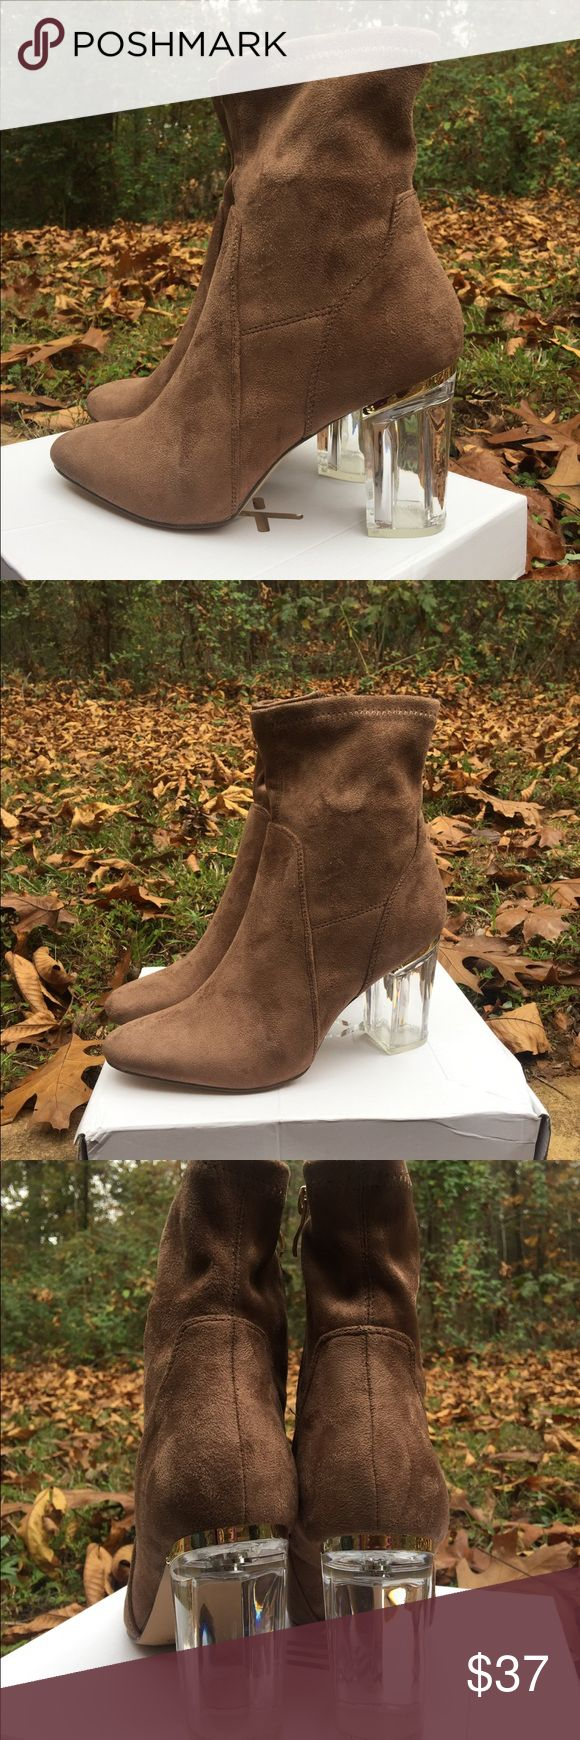 Clear heeled high ankle perspex boots. Brand new with box. Never worn. Women's size 8.5  Color: Taupe Shoes Ankle Boots & Booties